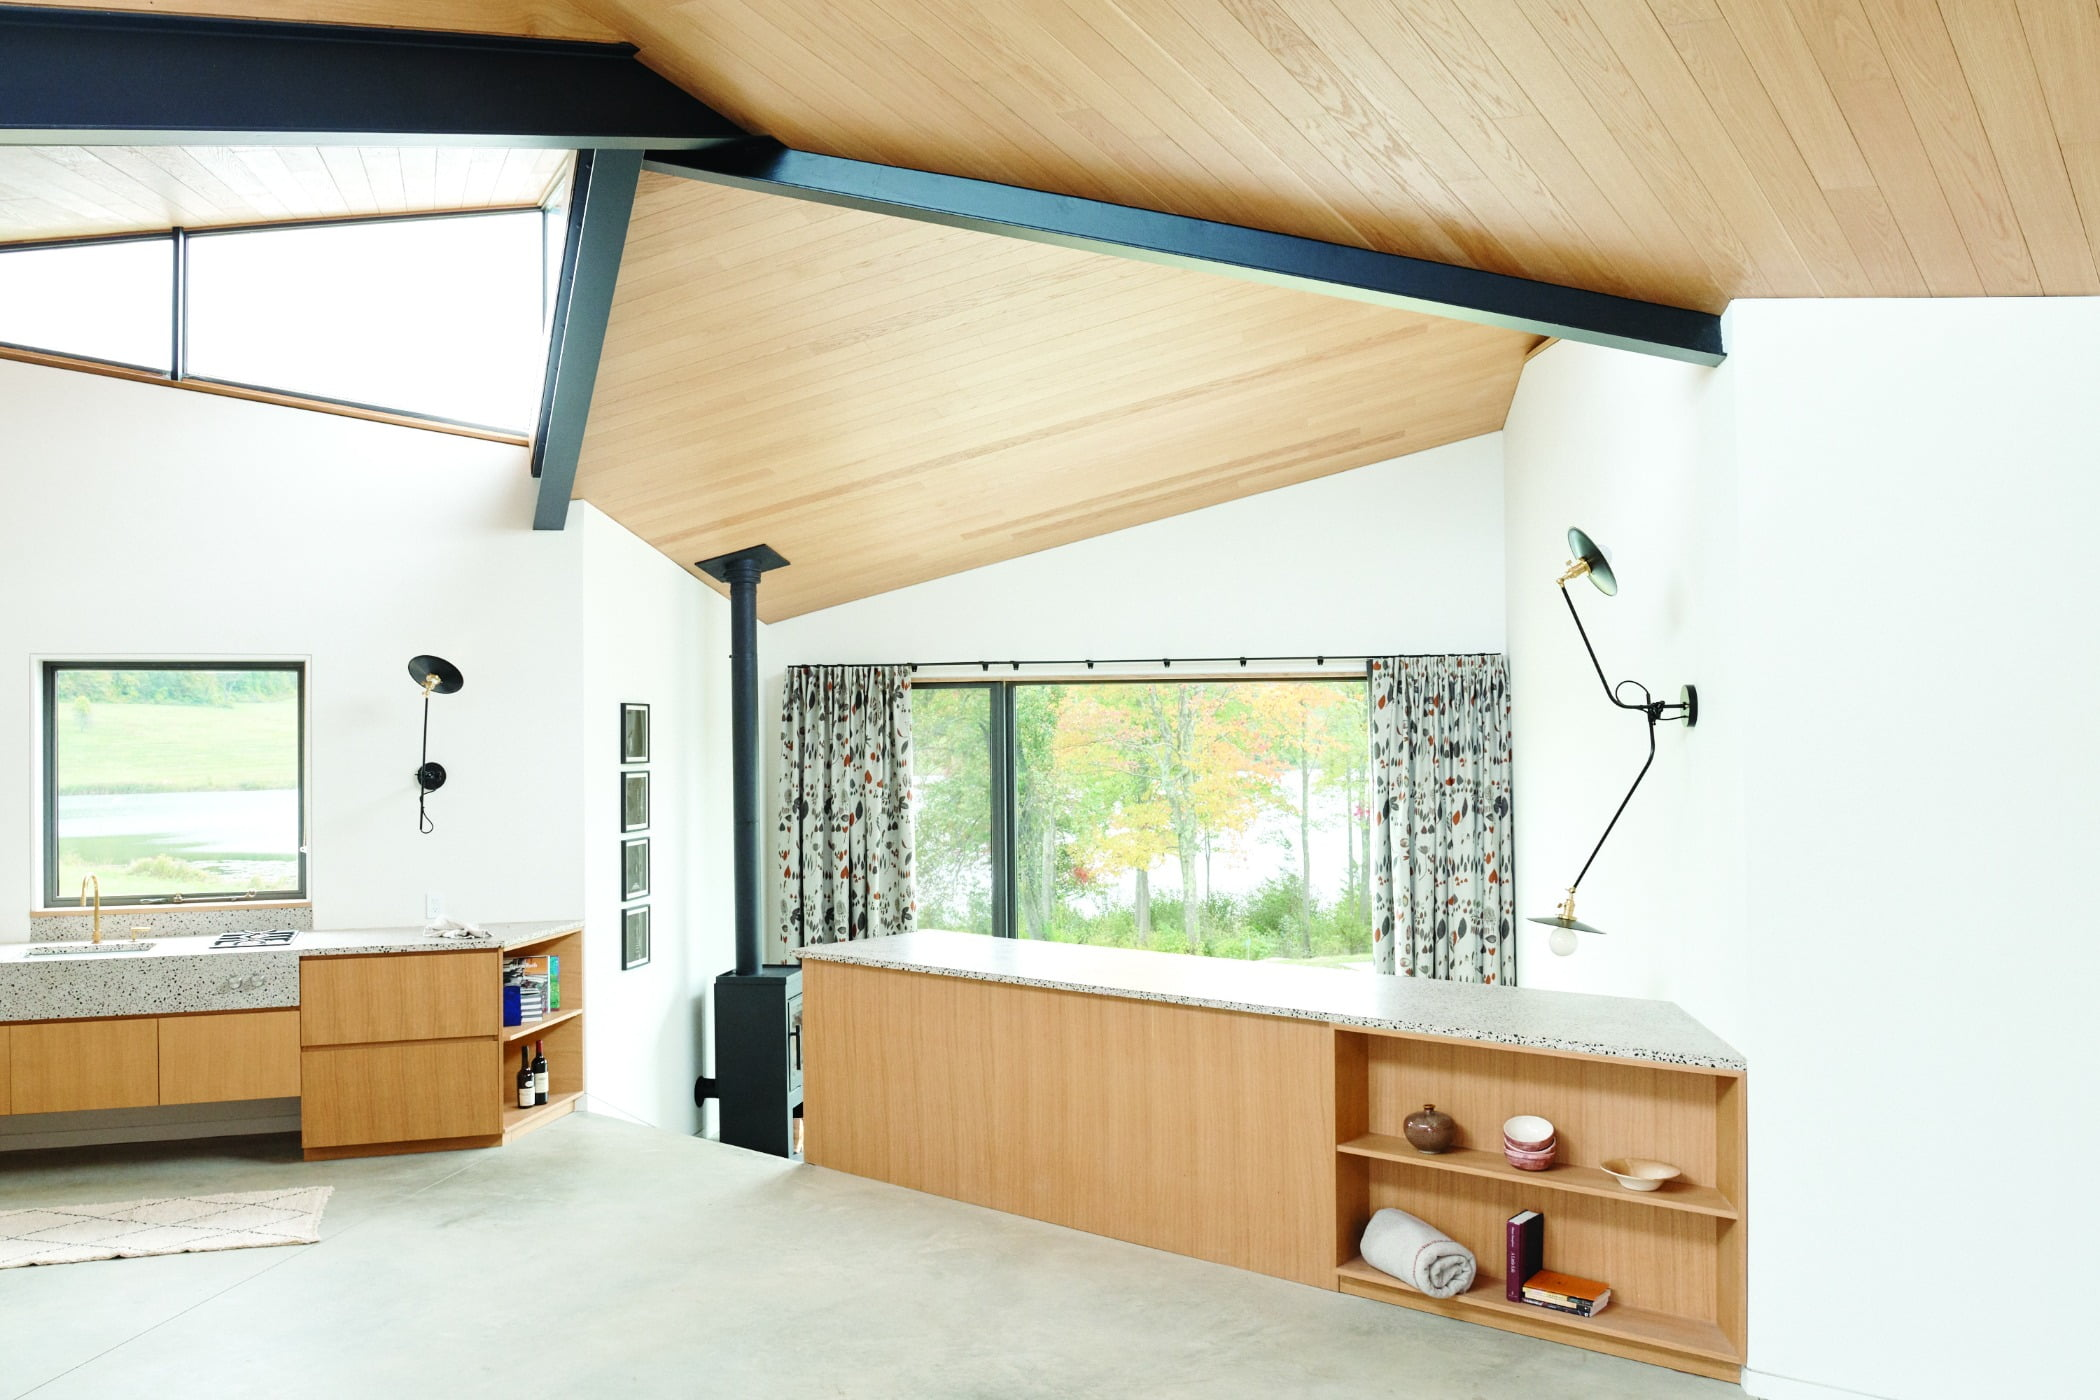 Interior design, Cabinetry, Furniture, Building, Property, Wood, Drawer, Shade, House, Floor